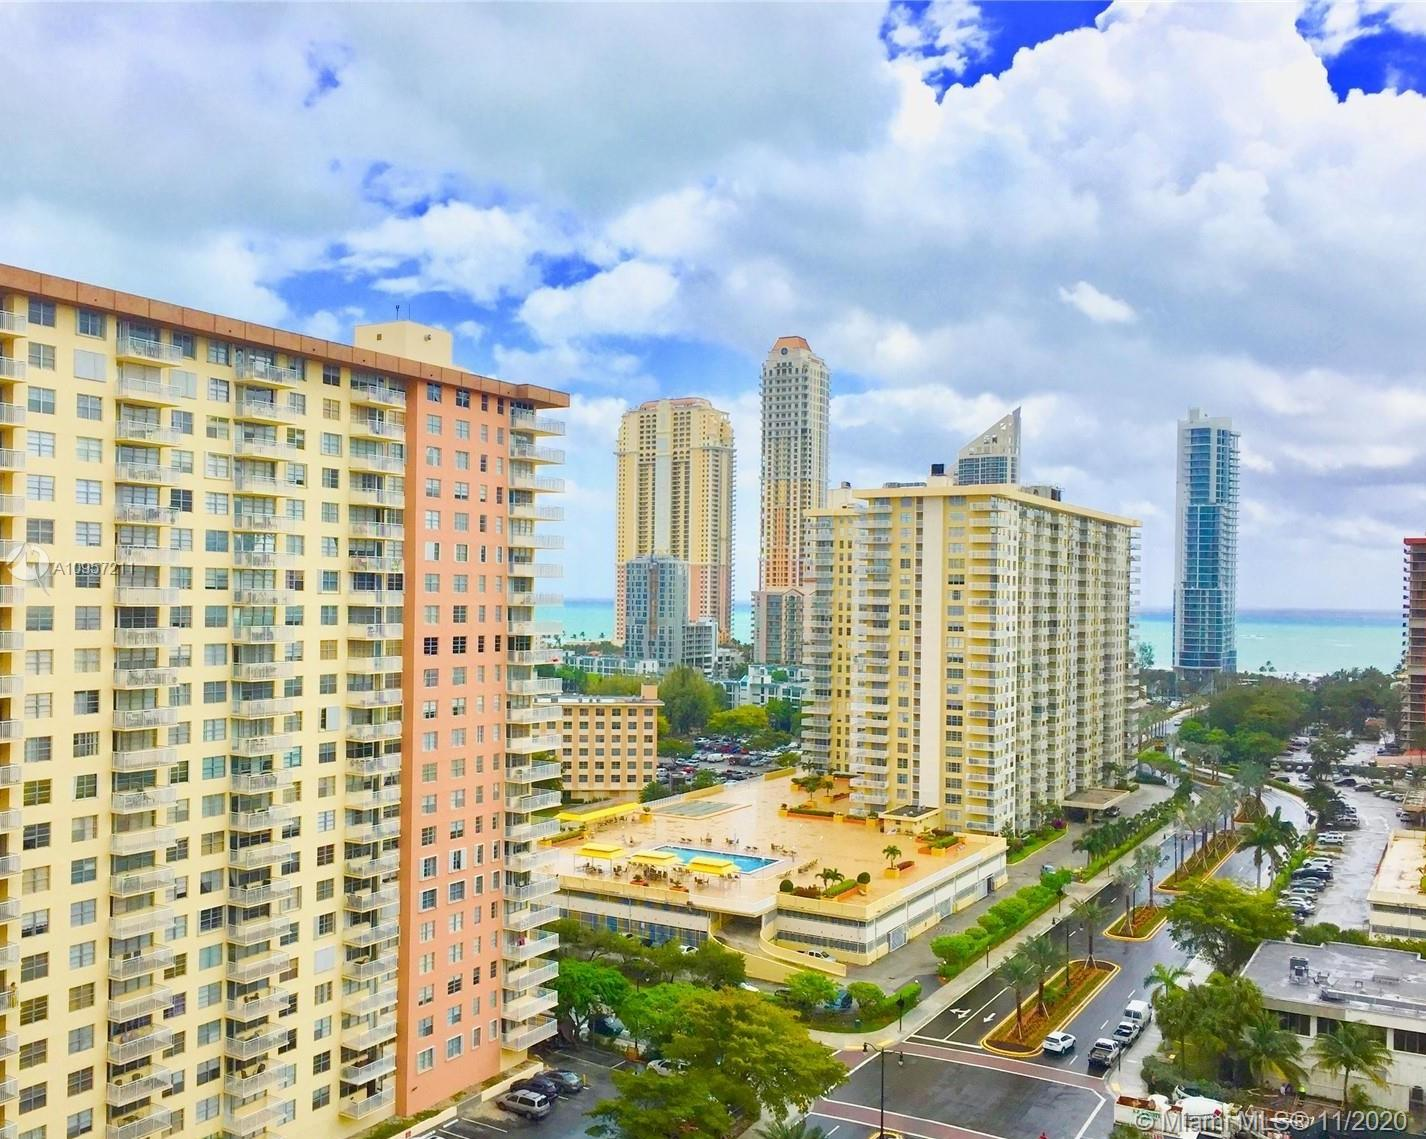 Winston Tower 100 #510 - 250 174th St #510, Sunny Isles Beach, FL 33160